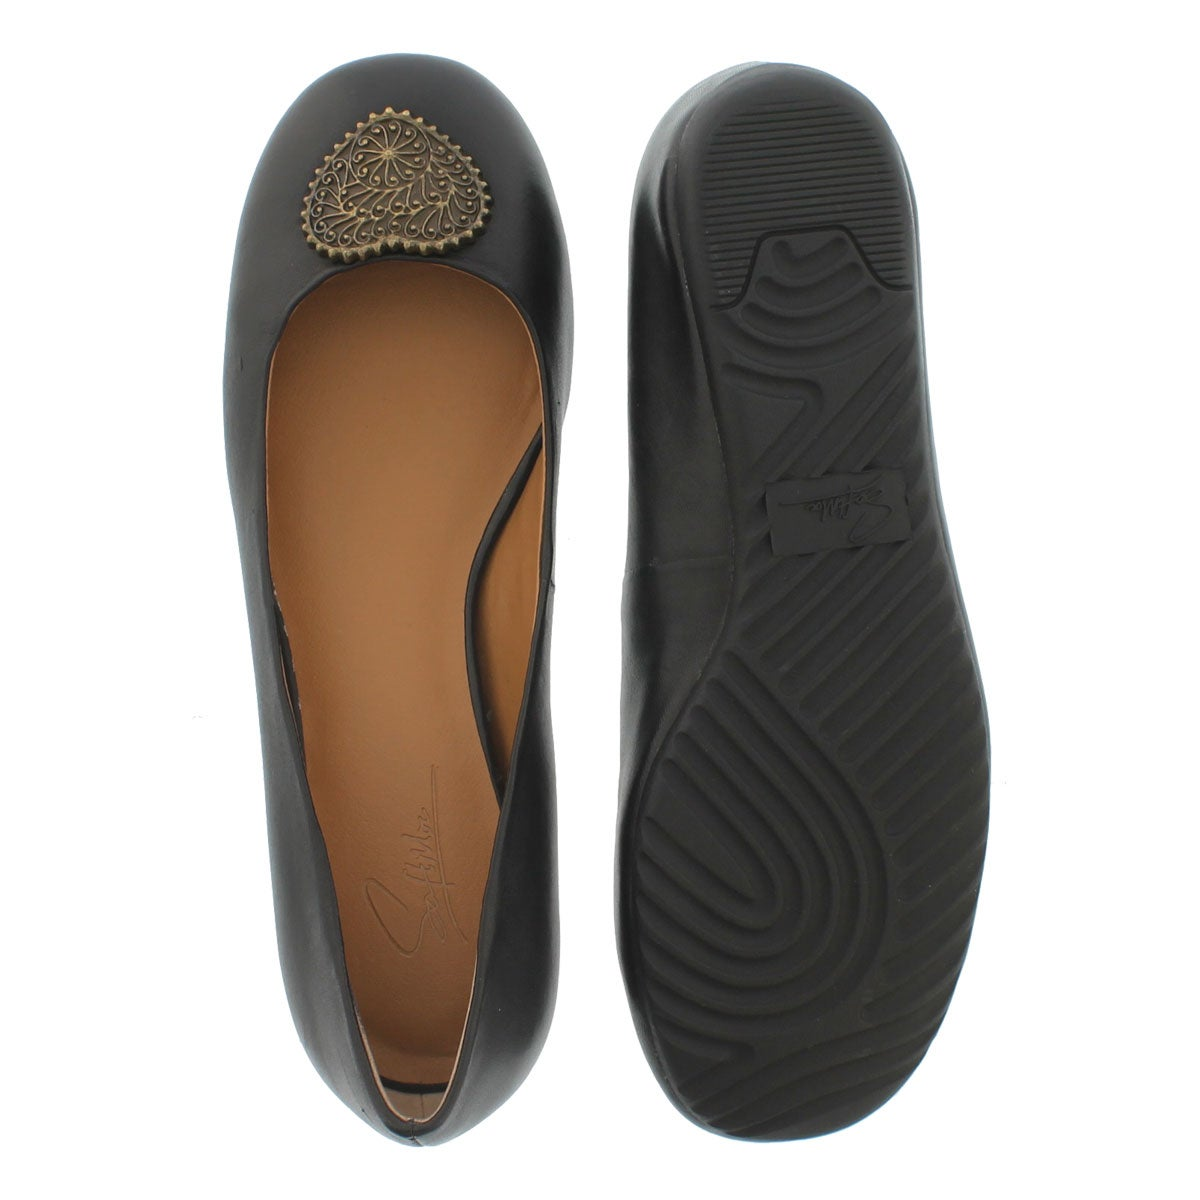 Ballerines Doris noir, fem - Large